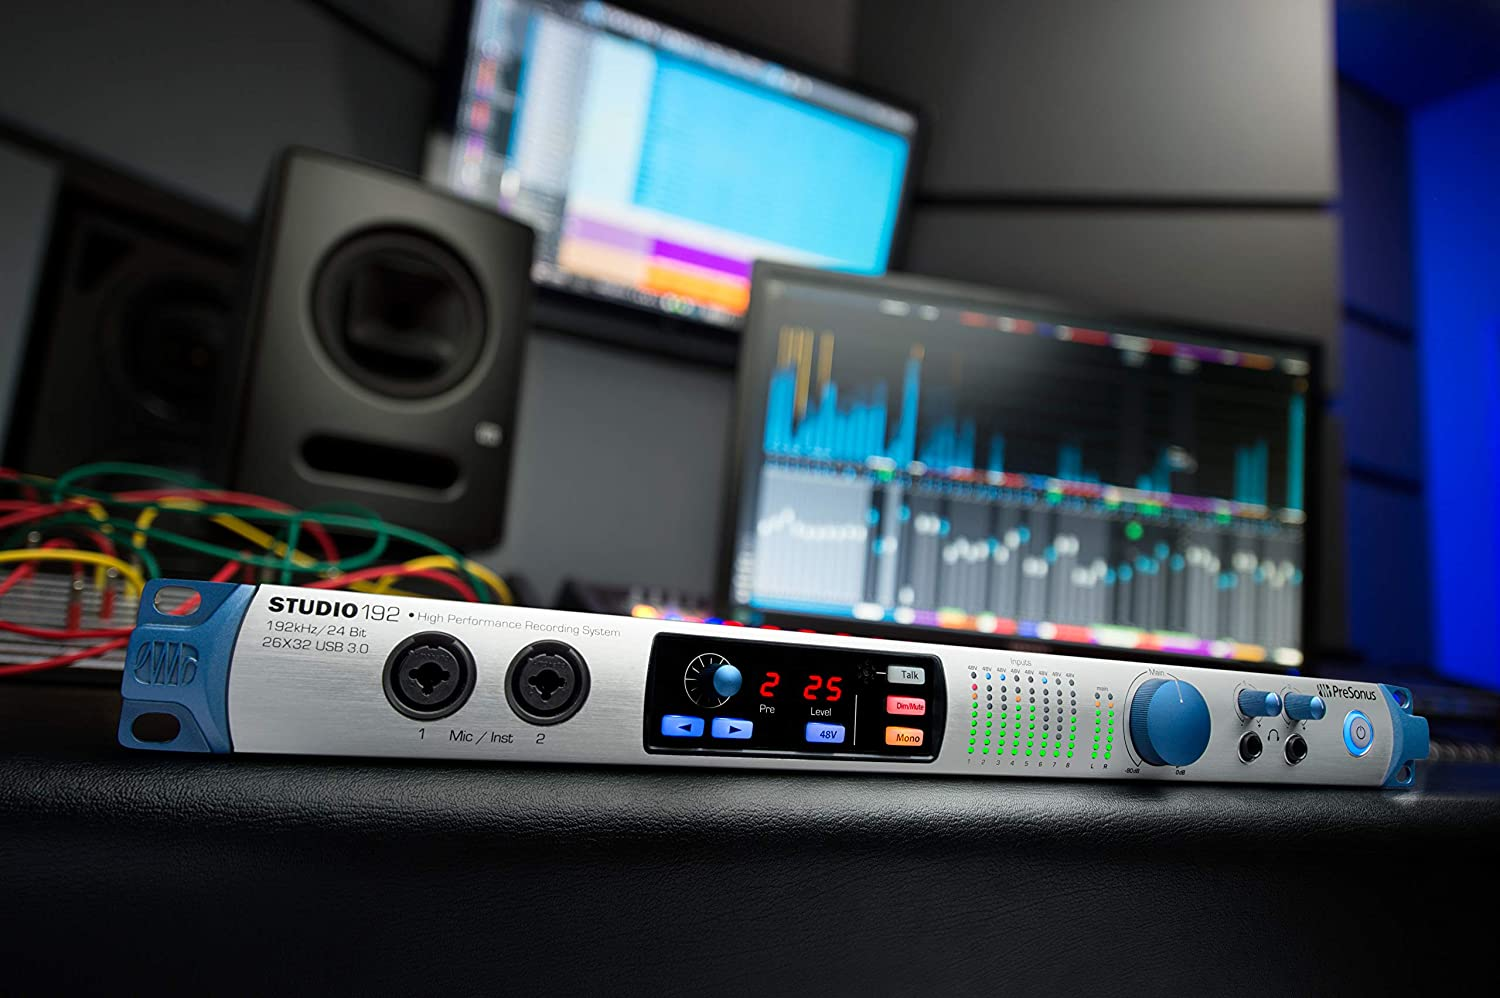 PreSonus-Studio-192-26x32-USB-3.0-Audio-Interface-and-Studio-Command-Center